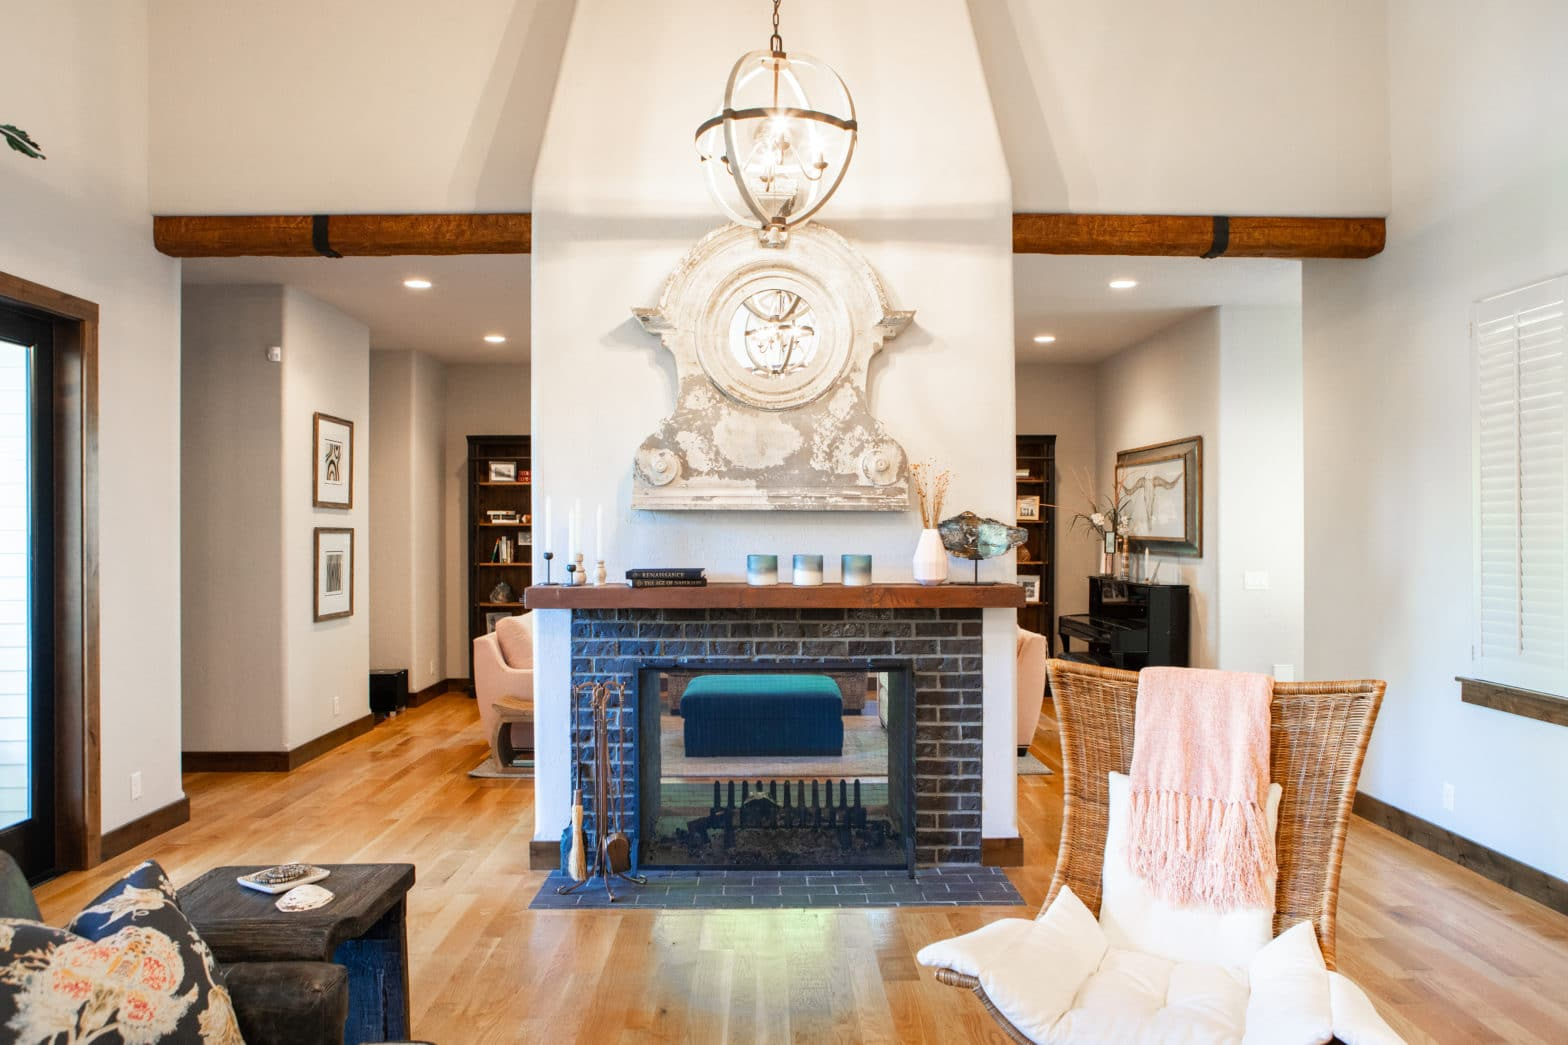 eclectic furniture and decor custom home design